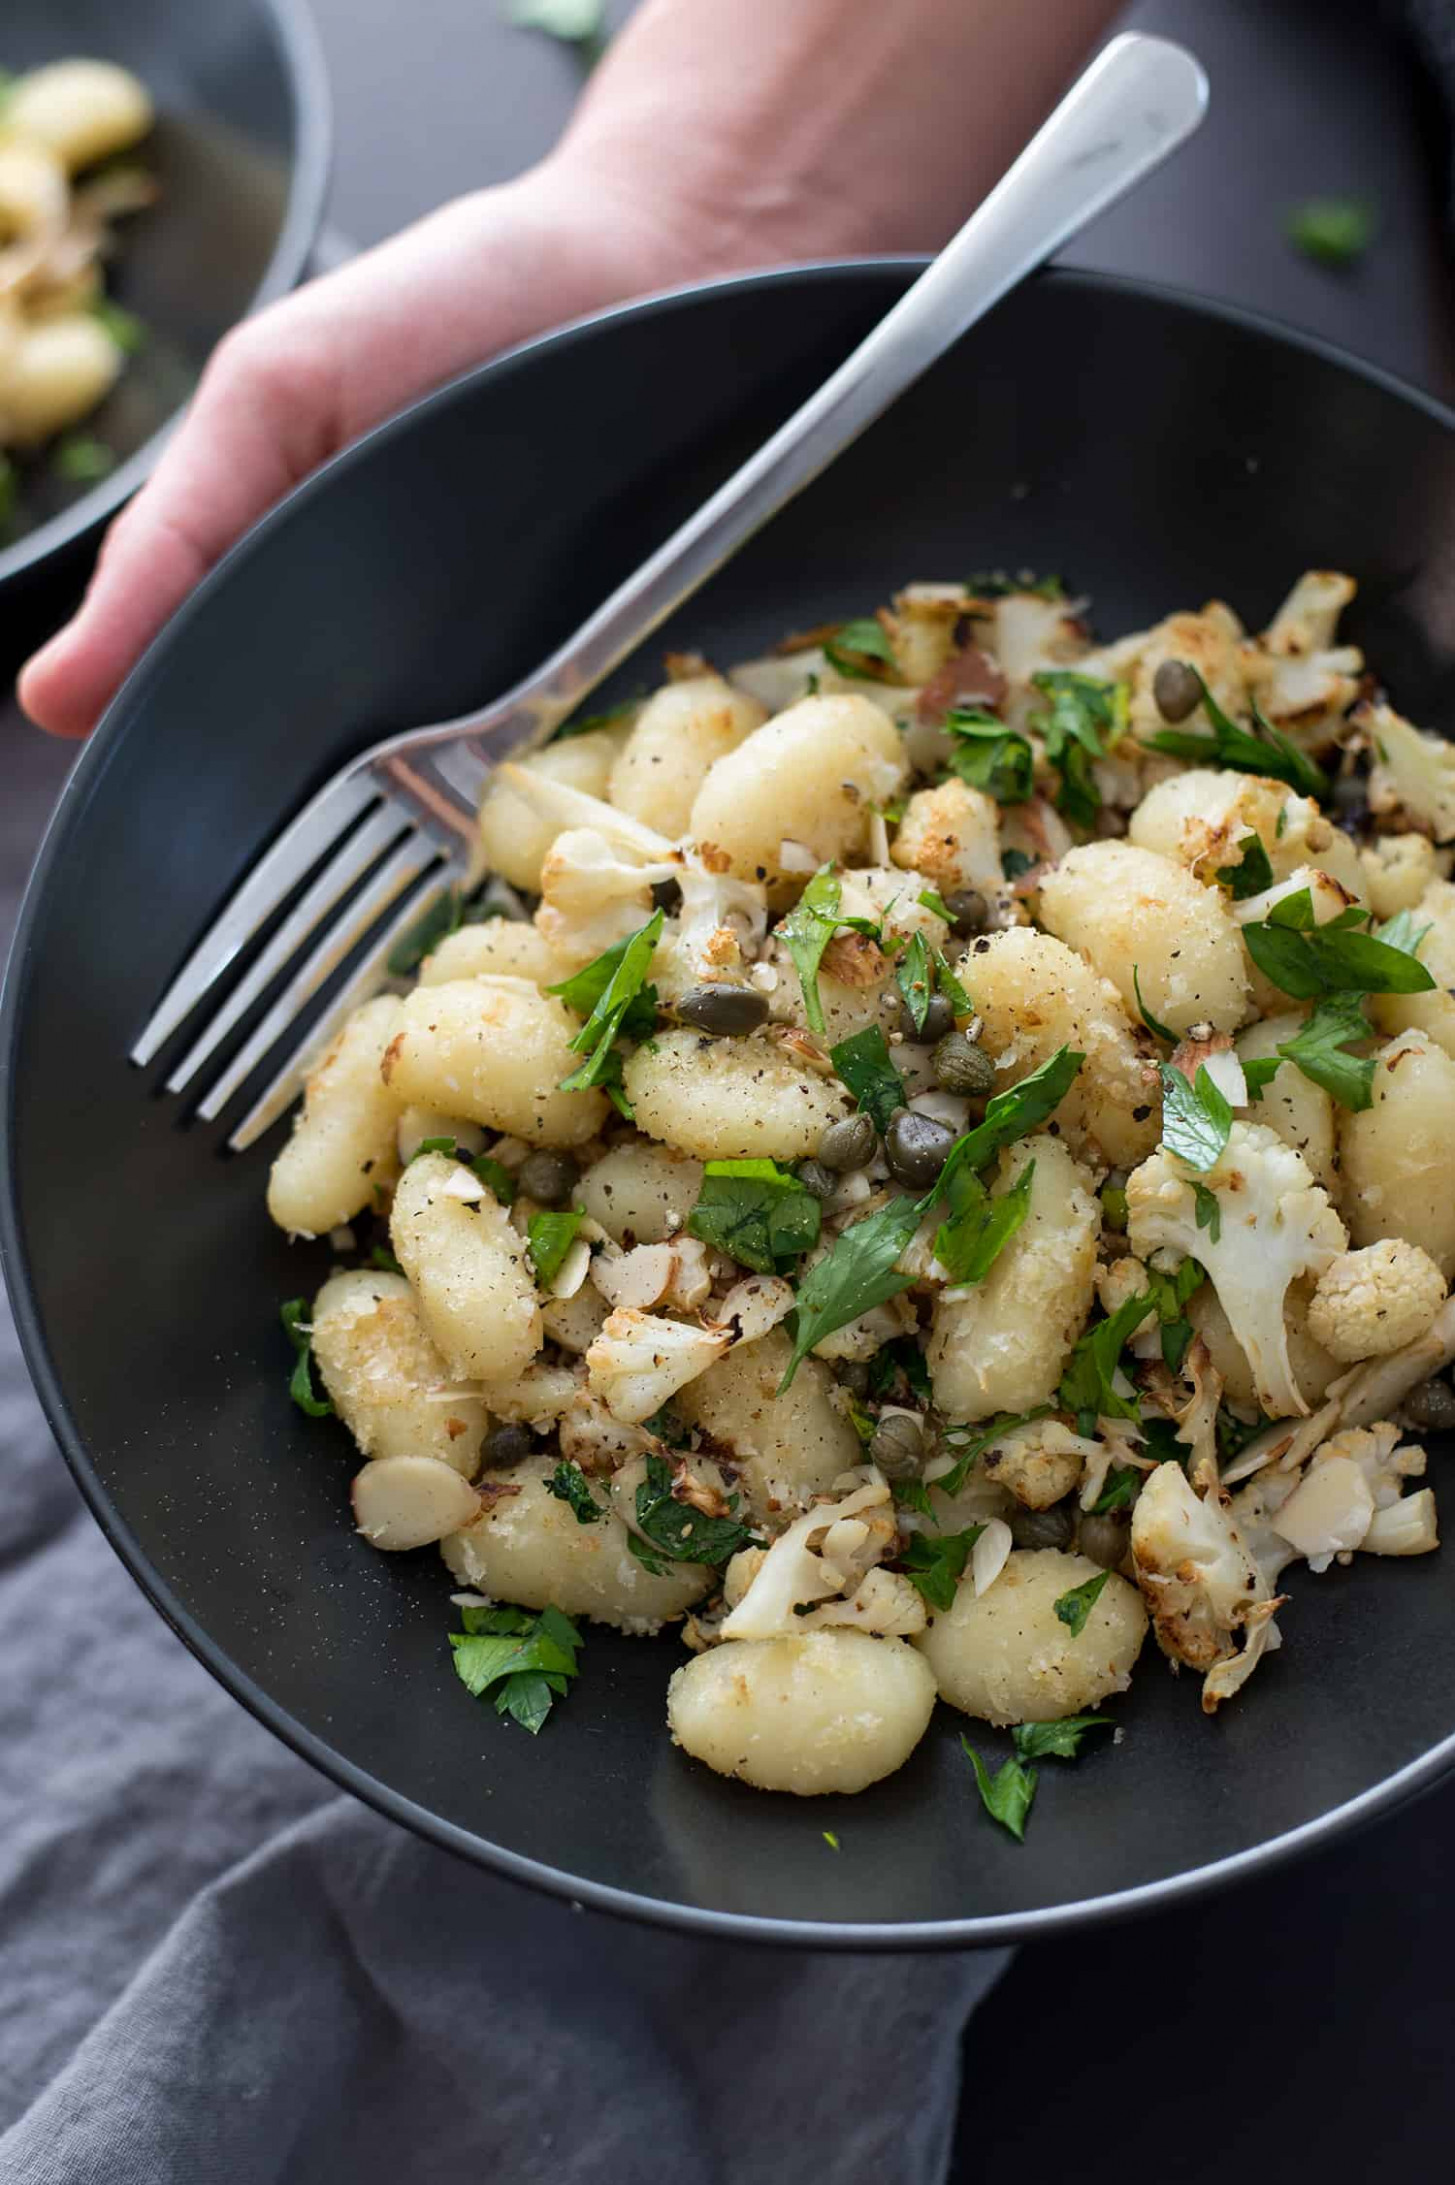 Gnocchi With Roasted Cauliflower And Lemon - Recipes With Gnocchi Vegetarian